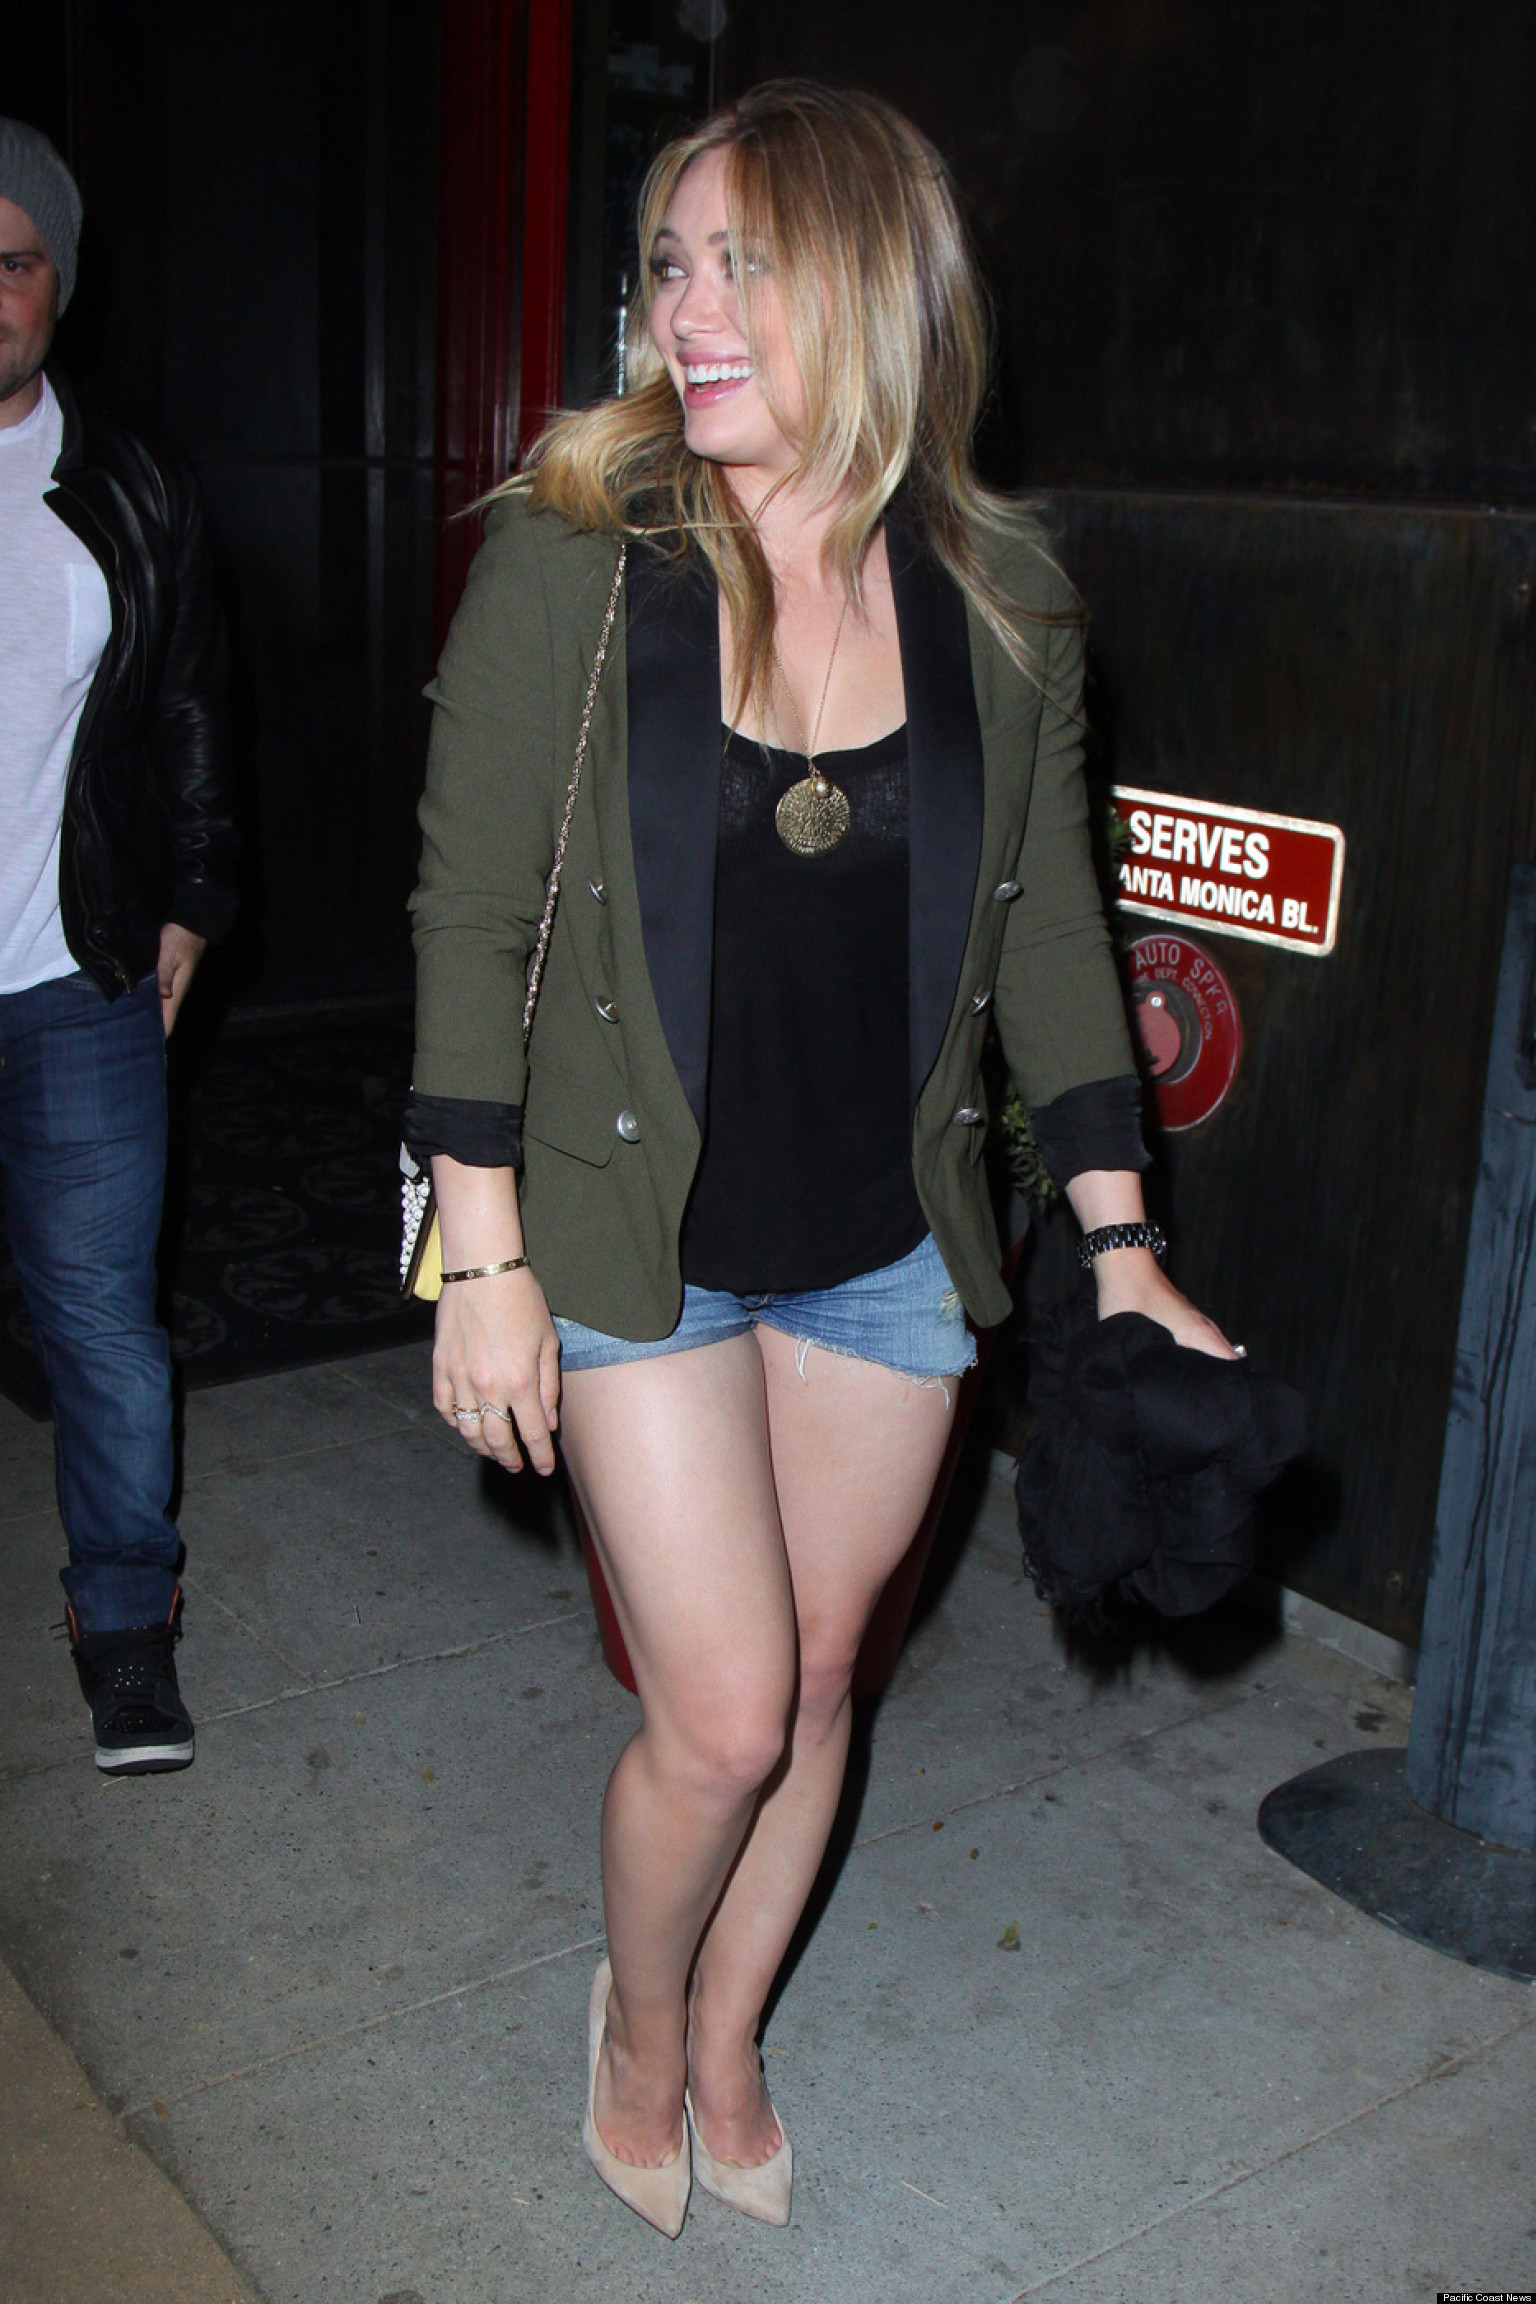 Hilary Duff S Legs On Full Display In Shorts Shorts